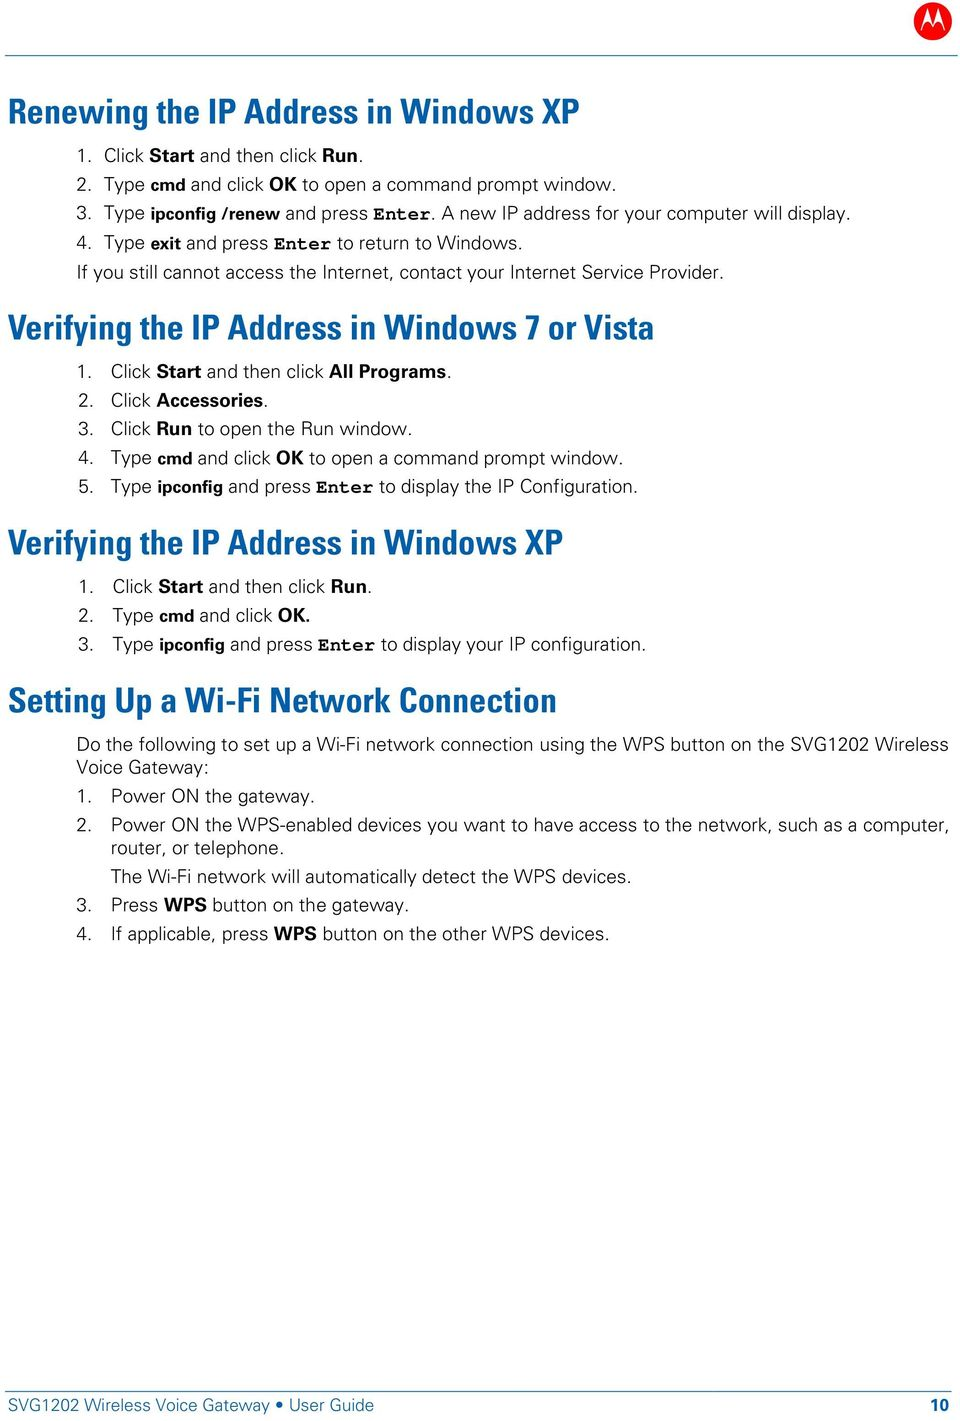 Verifying the IP Address in Windows 7 or Vista 1. Click Start and then click All Programs. 2. Click Accessories. 3. Click Run to open the Run window. 4.